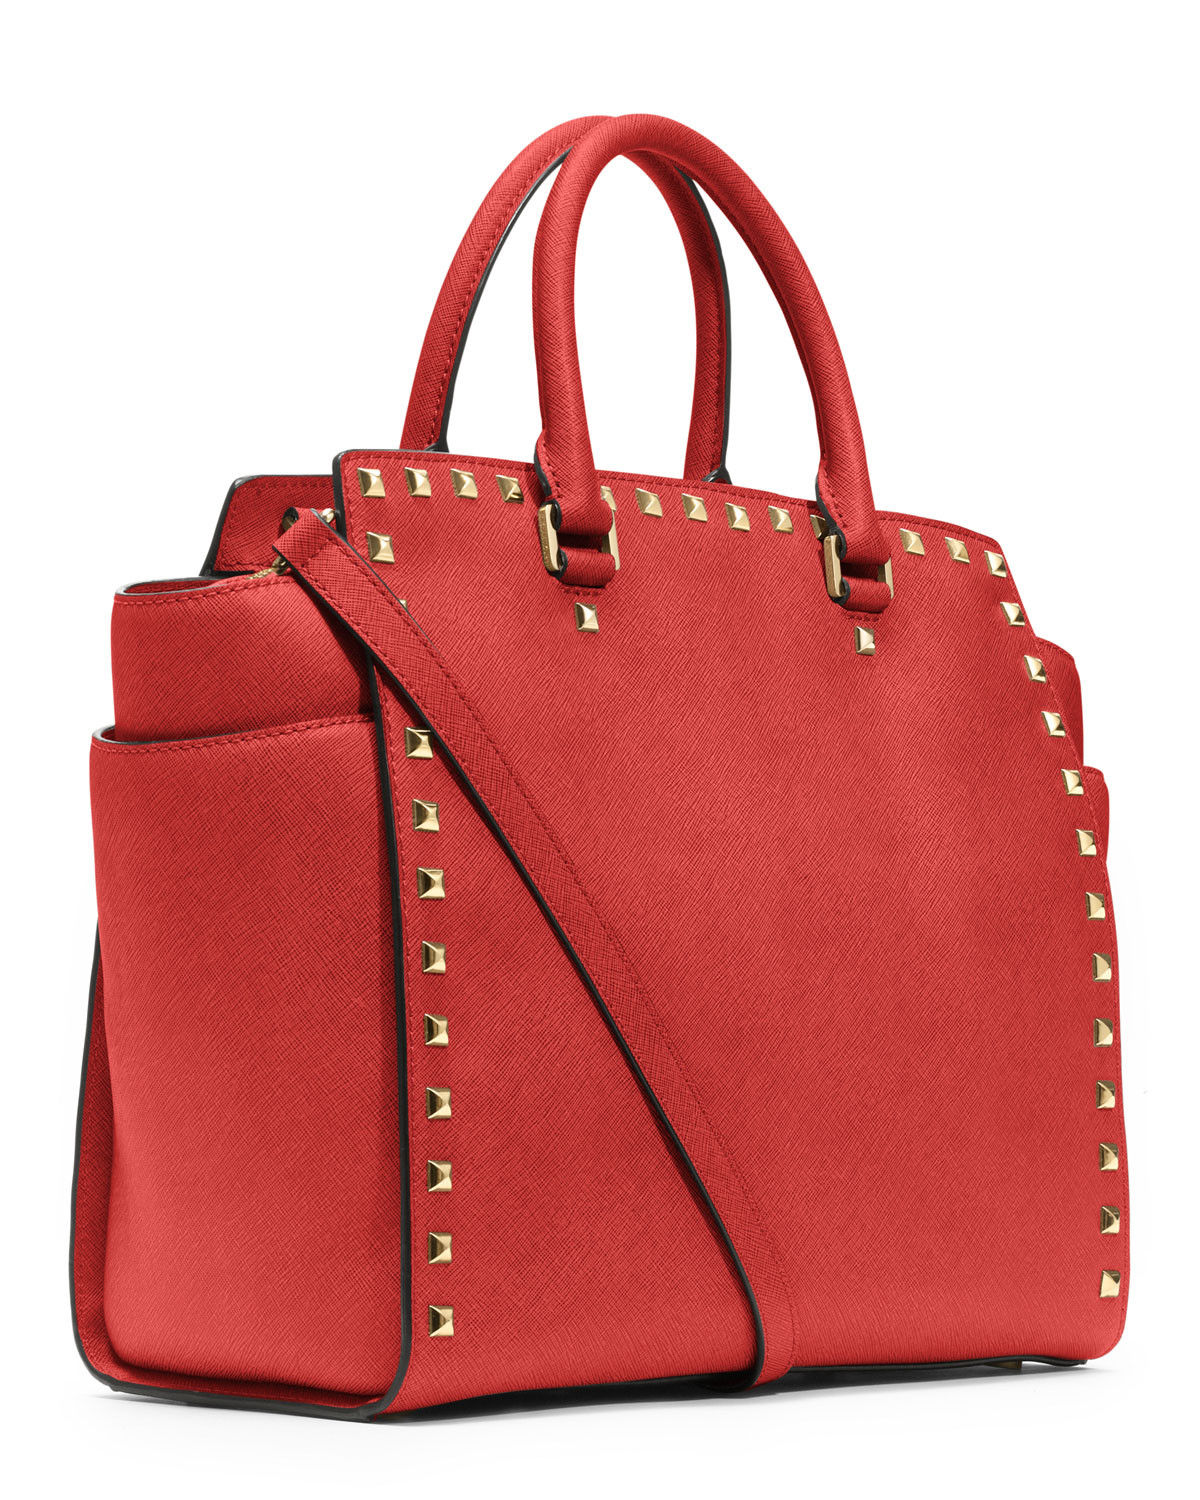 dfcb0cc23e29 Lyst - Michael Kors Large Selma Studded Saffiano Tote in Red